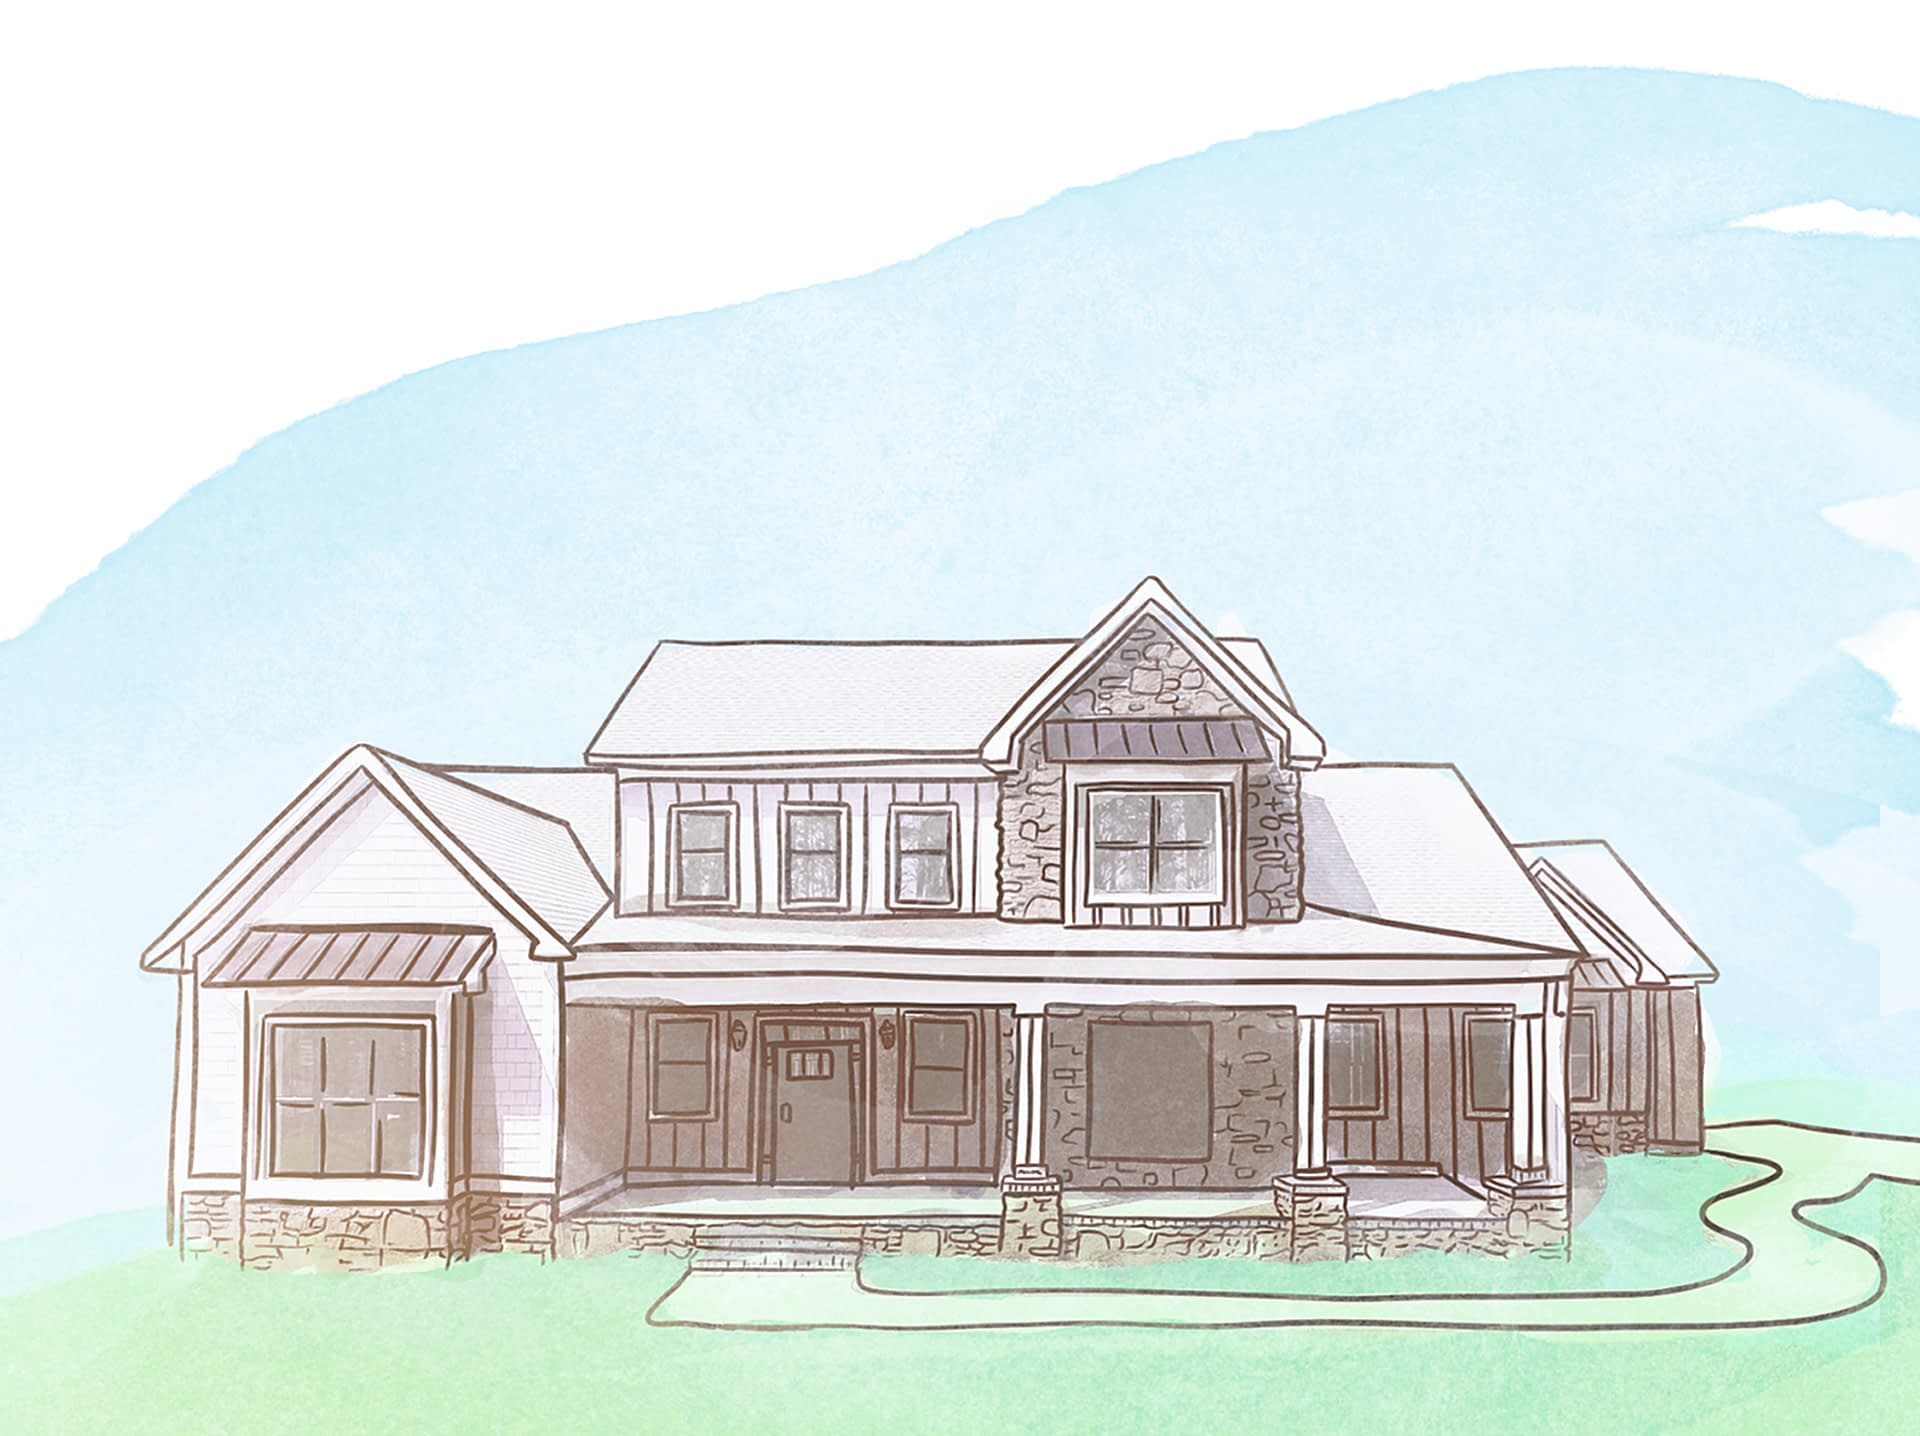 paragon-building-group-modern-farmhouse-illustration-sky